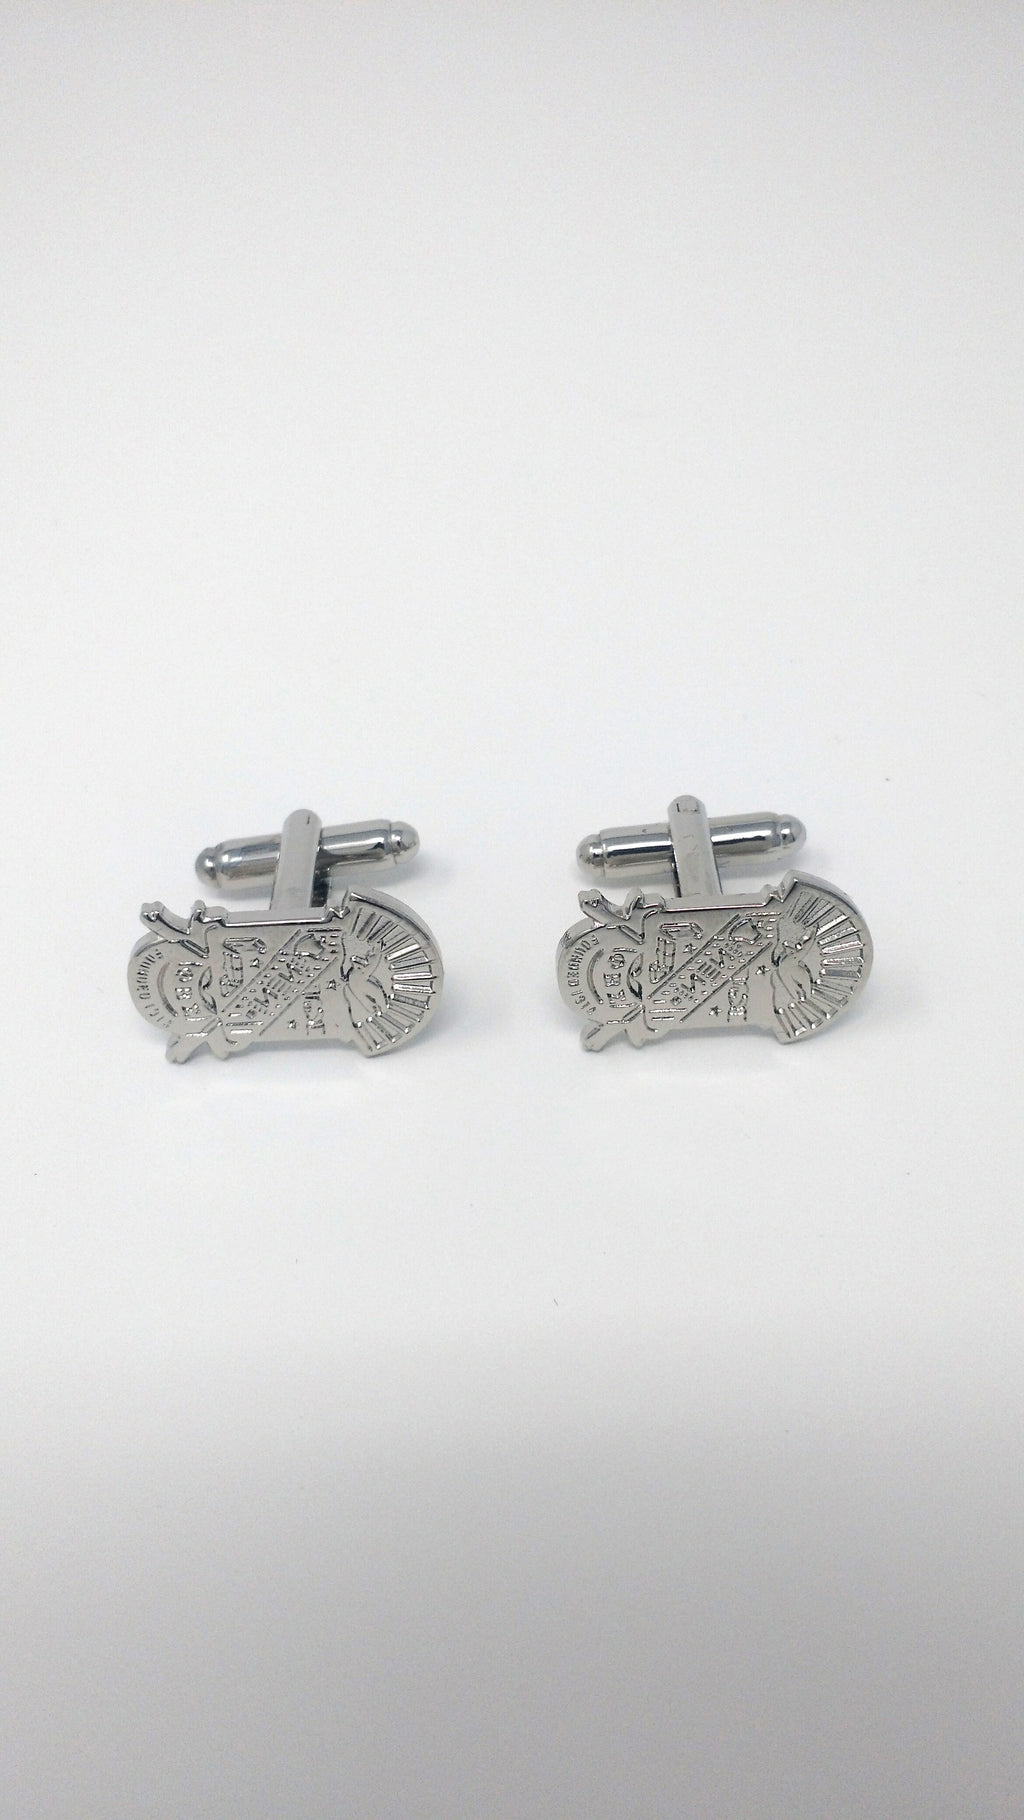 Phi Beta Sigma Sandblast Cuff Links